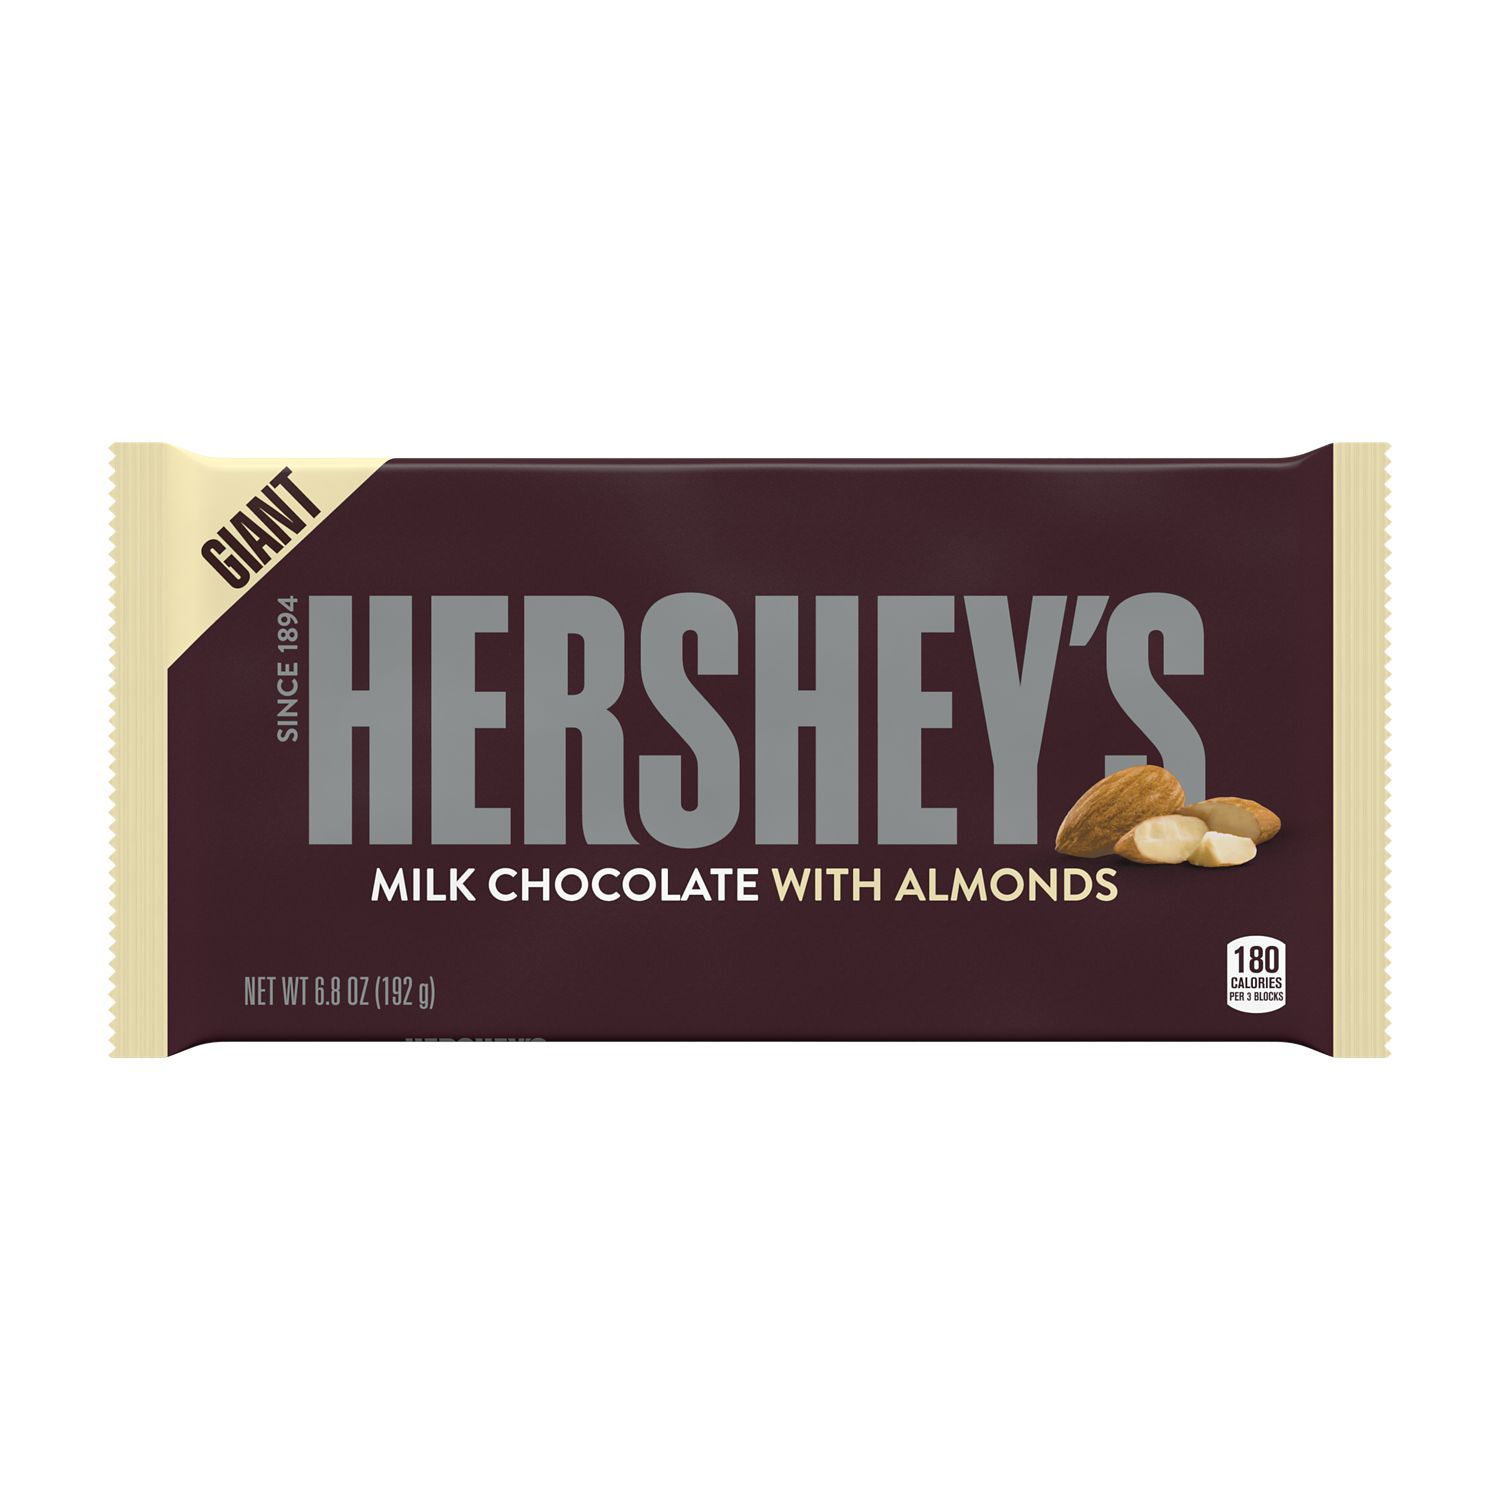 HERSHEY'S Milk Chocolate with Almonds Giant Candy Bar, 6.8 oz - Front of Package